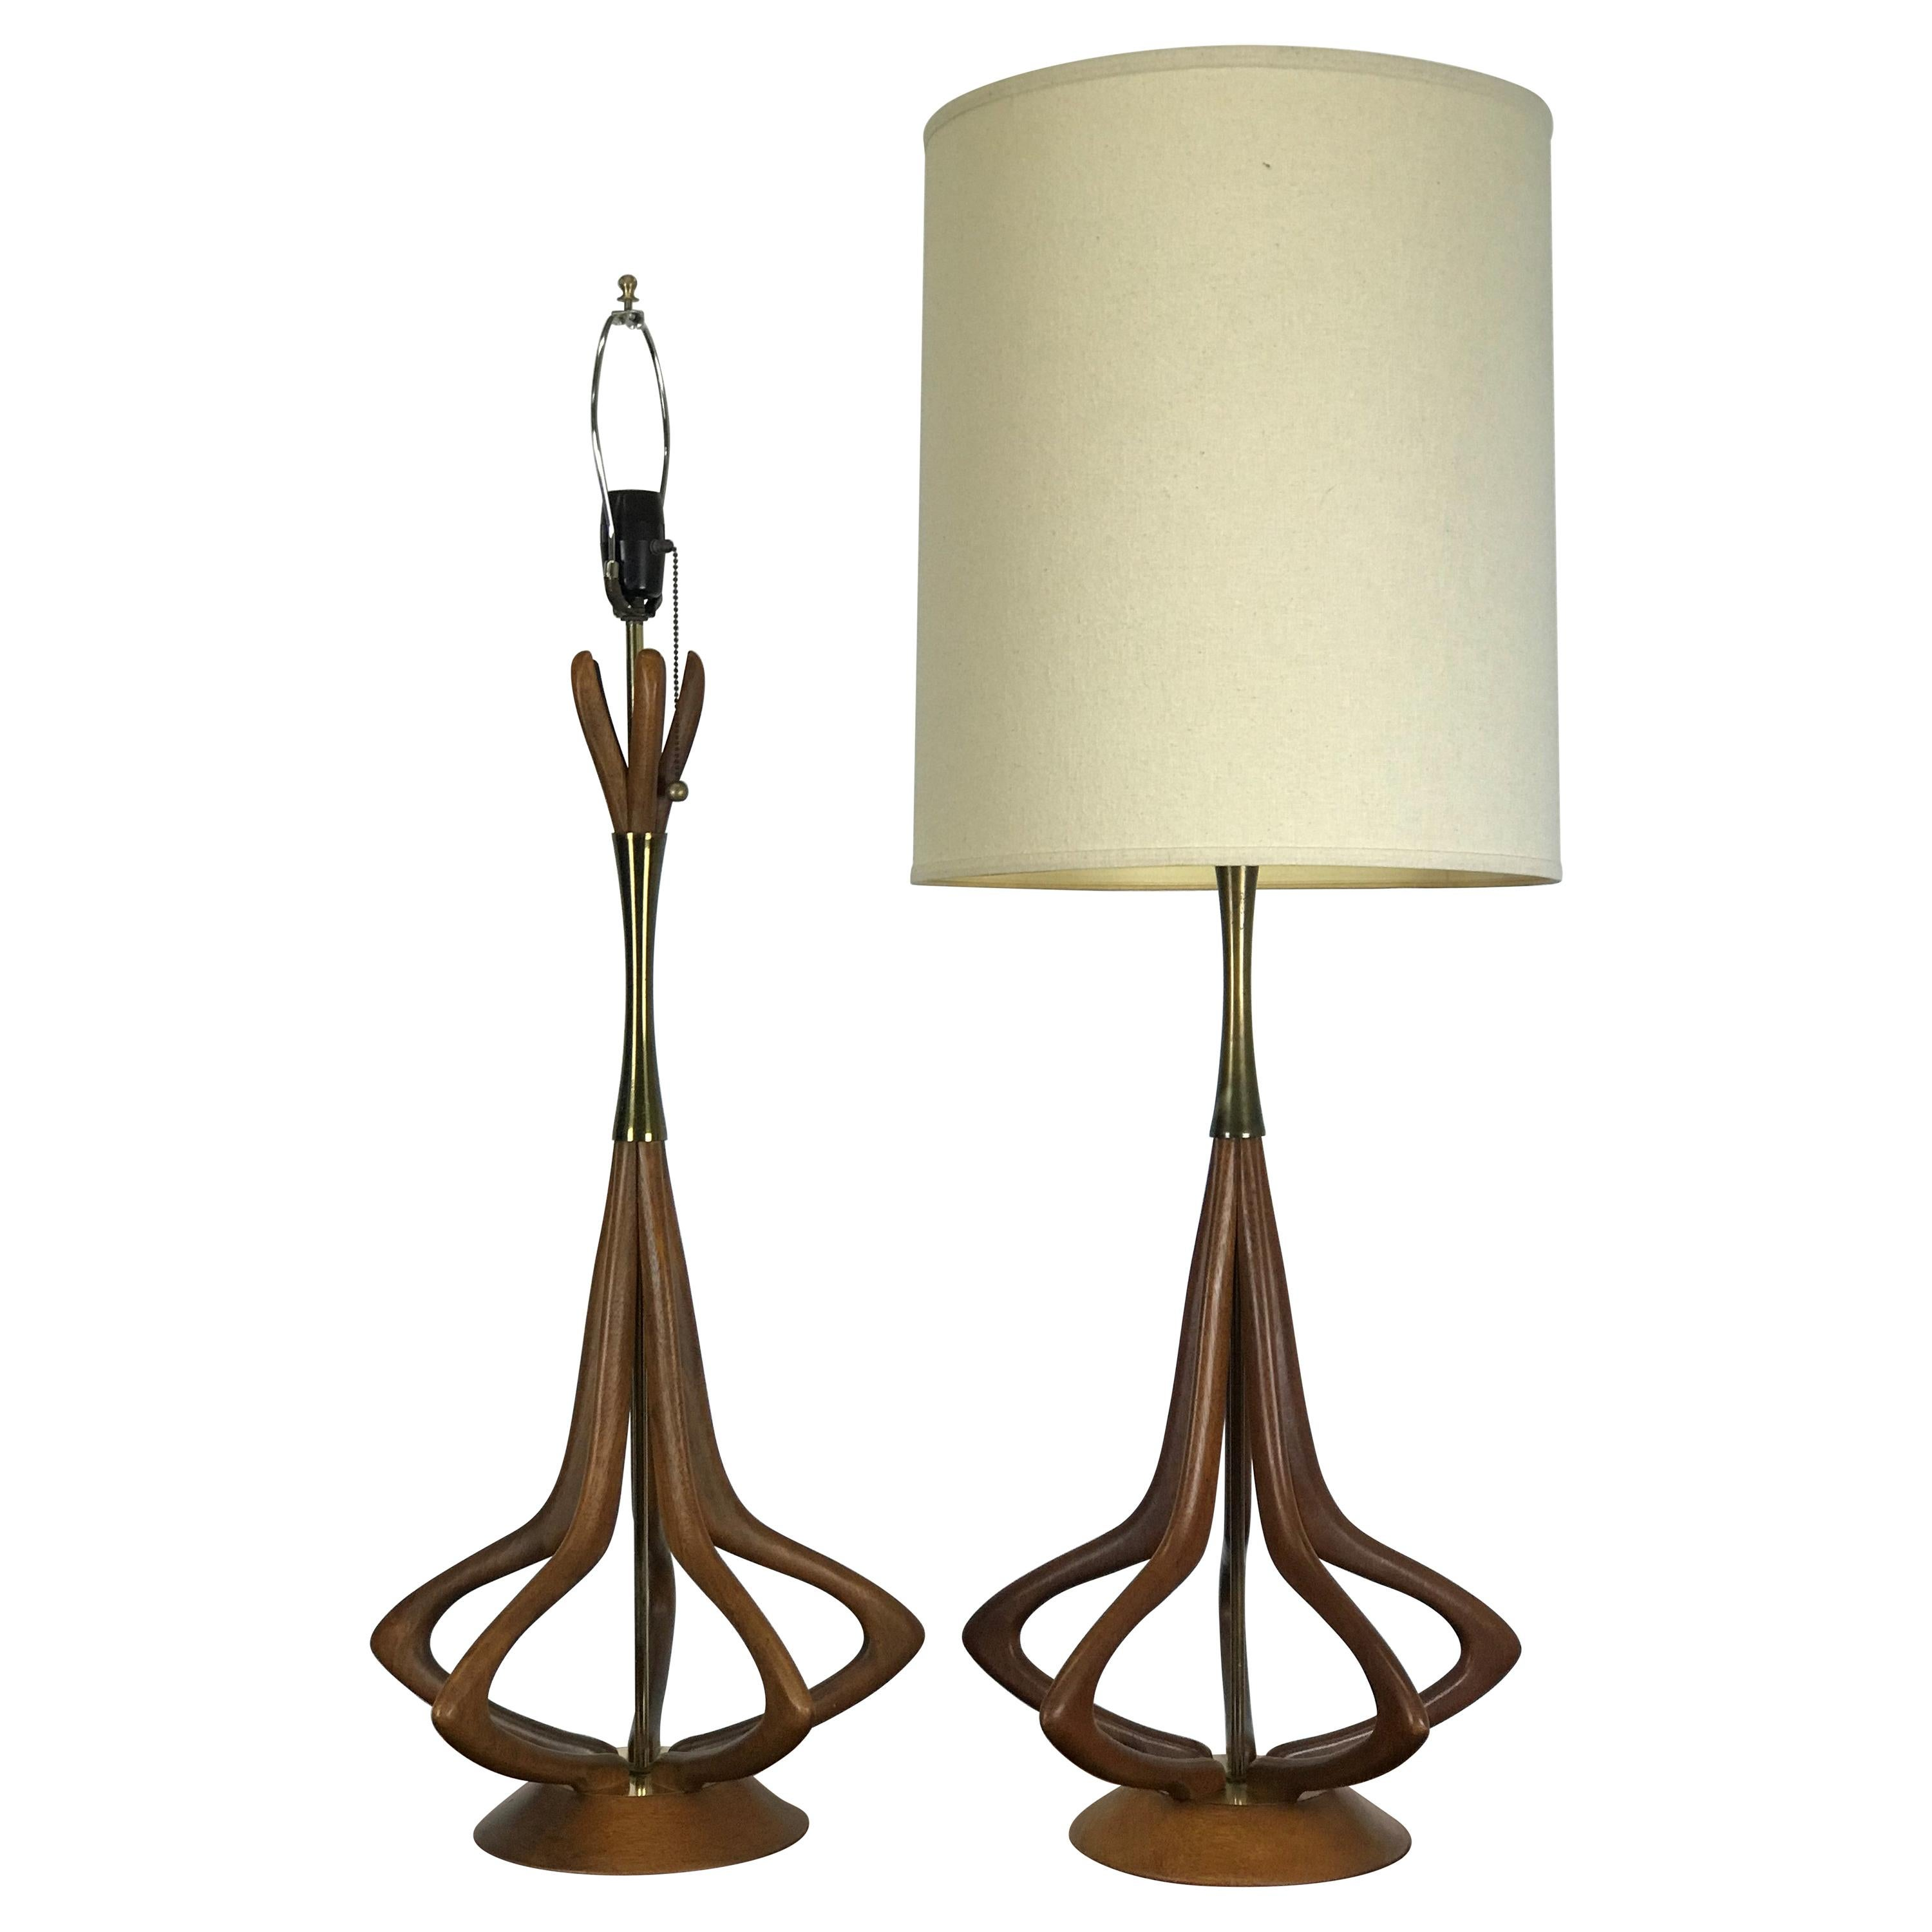 Mid-Century Modern Lamps in Sculptural Walnut with Brass Accents by Modeline